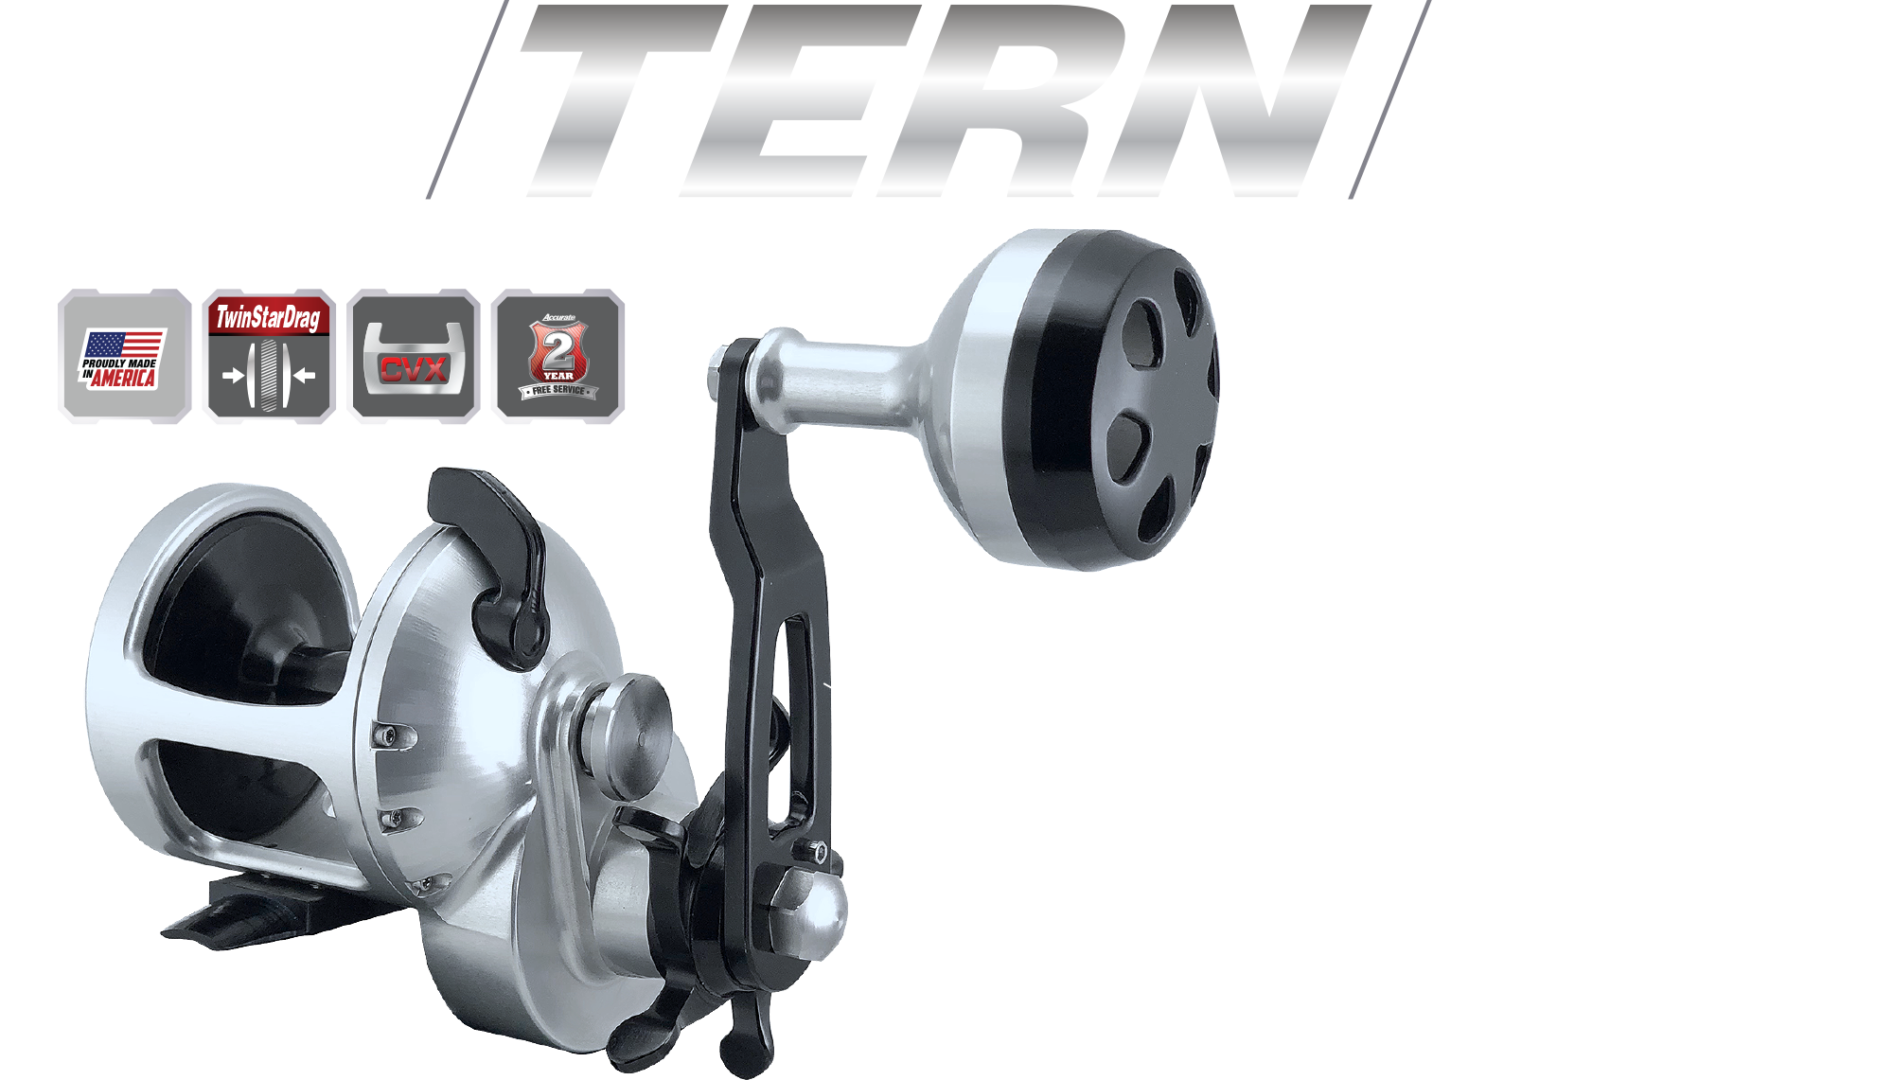 · First star drag reel to ever have a TwinDrag · Sleeved Spool for extreme castability · CVX design · Stainless Steel Anti-Reverse Bearing · Made from 6061-T6 aircraft grade aluminum · 17-4 Heat treated steel gears and gear shaft · Power Knob · Made in the USA